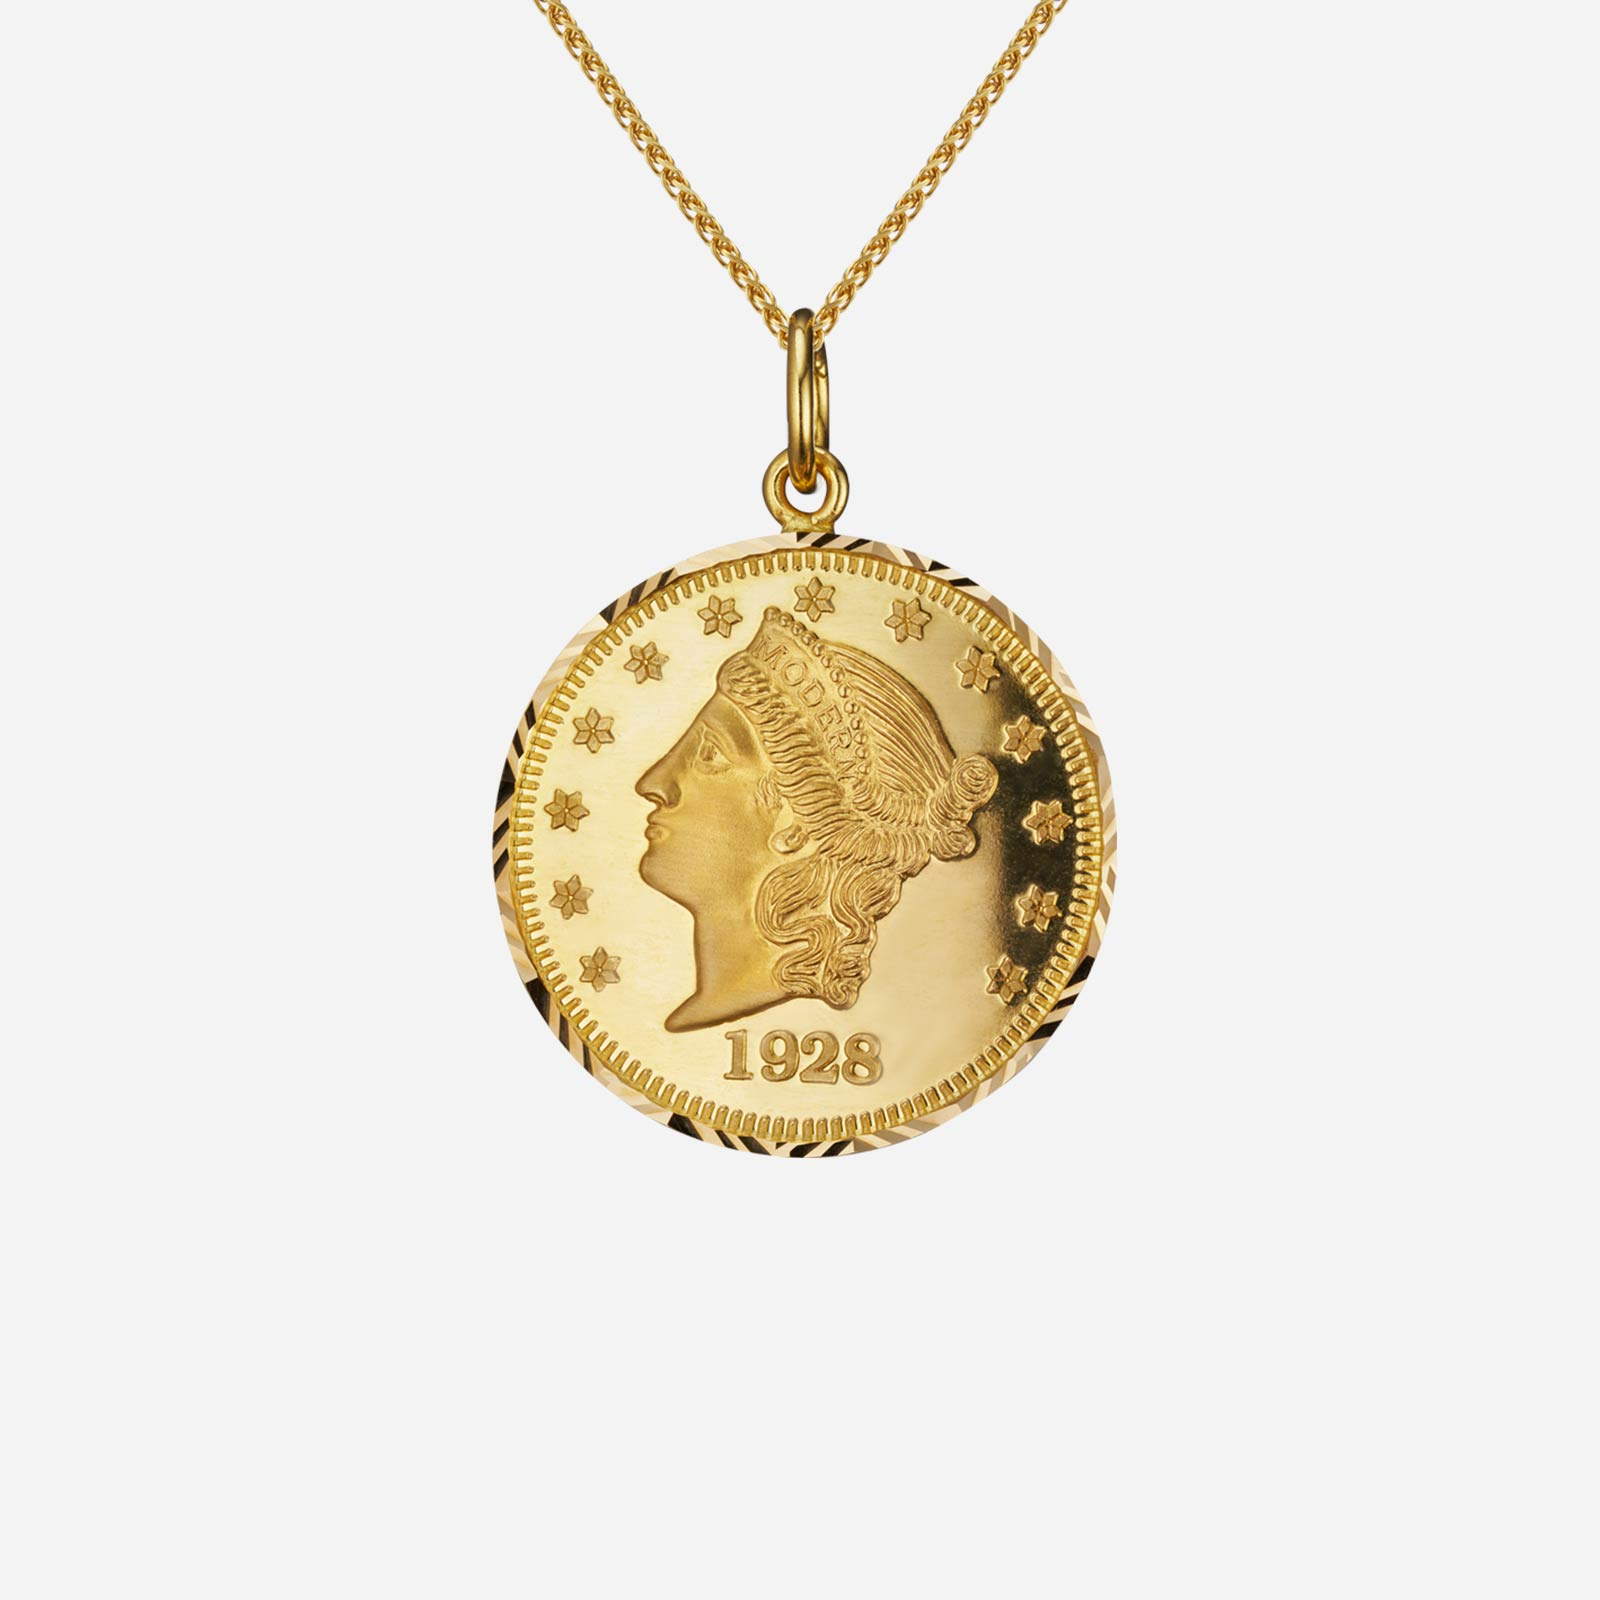 Lady Liberty Coin Pendant (35mm)